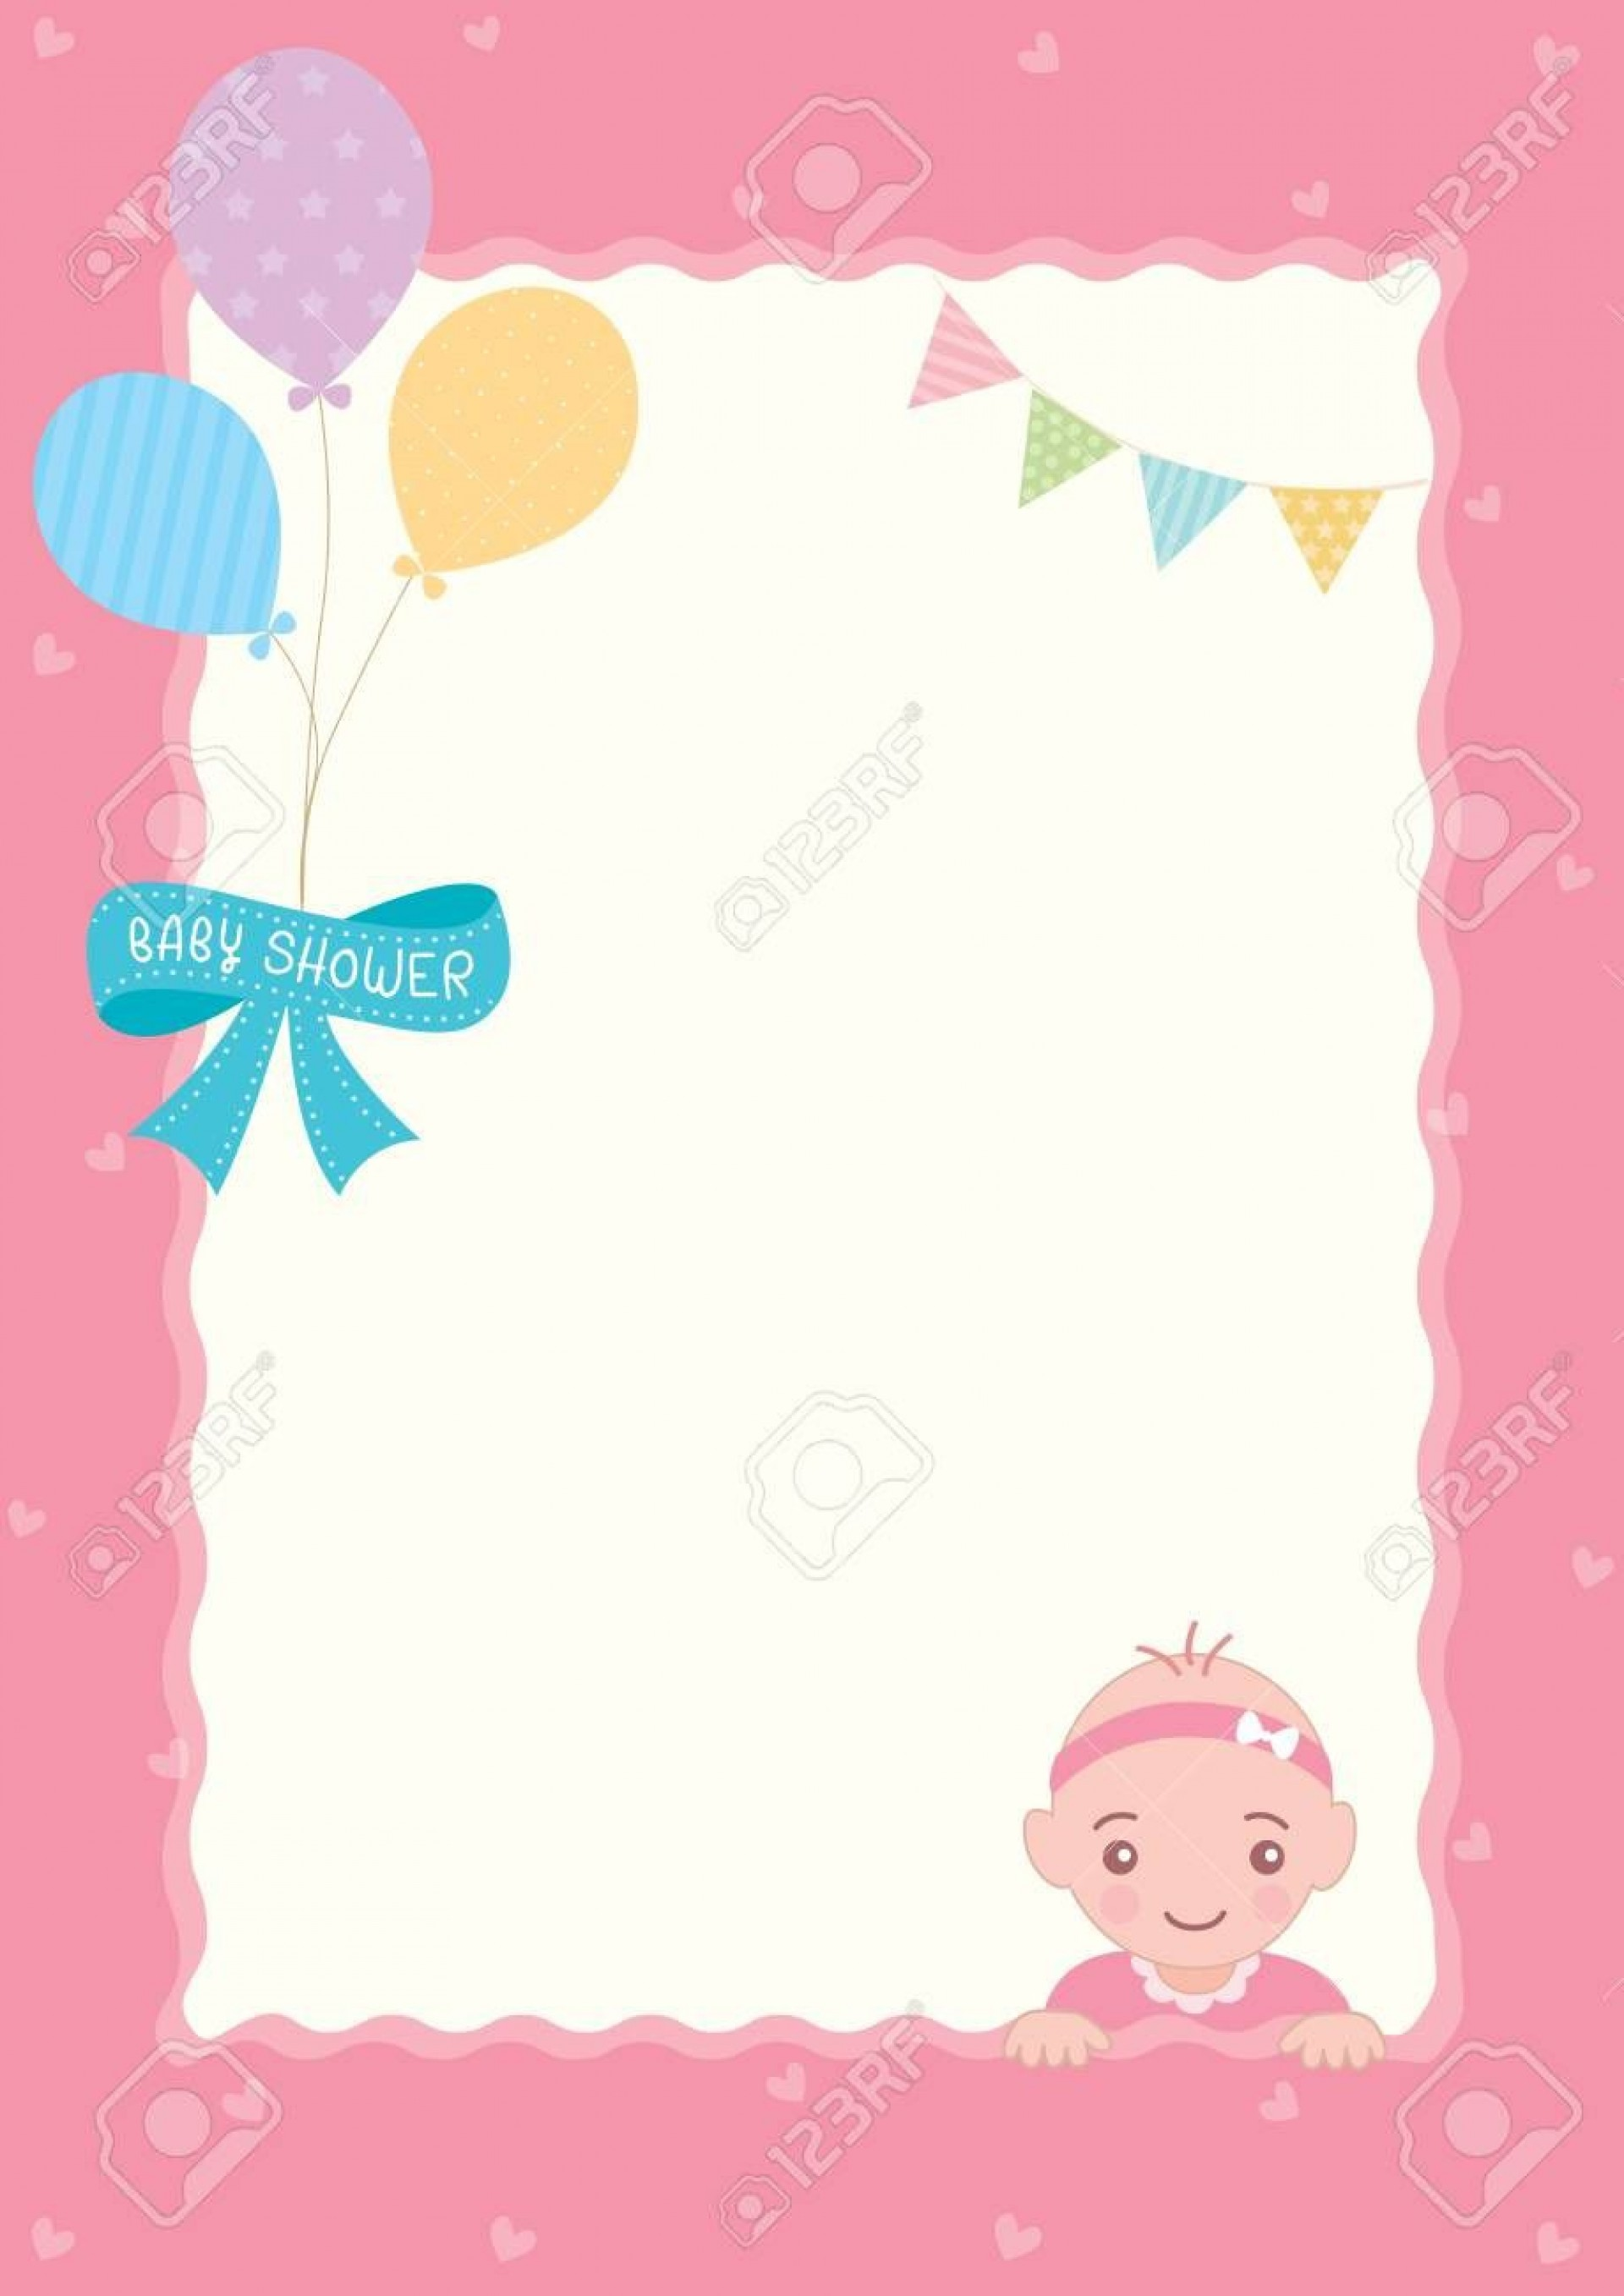 004 Top Baby Shower Template Girl Picture  Nautical Invitation Free For Word1920